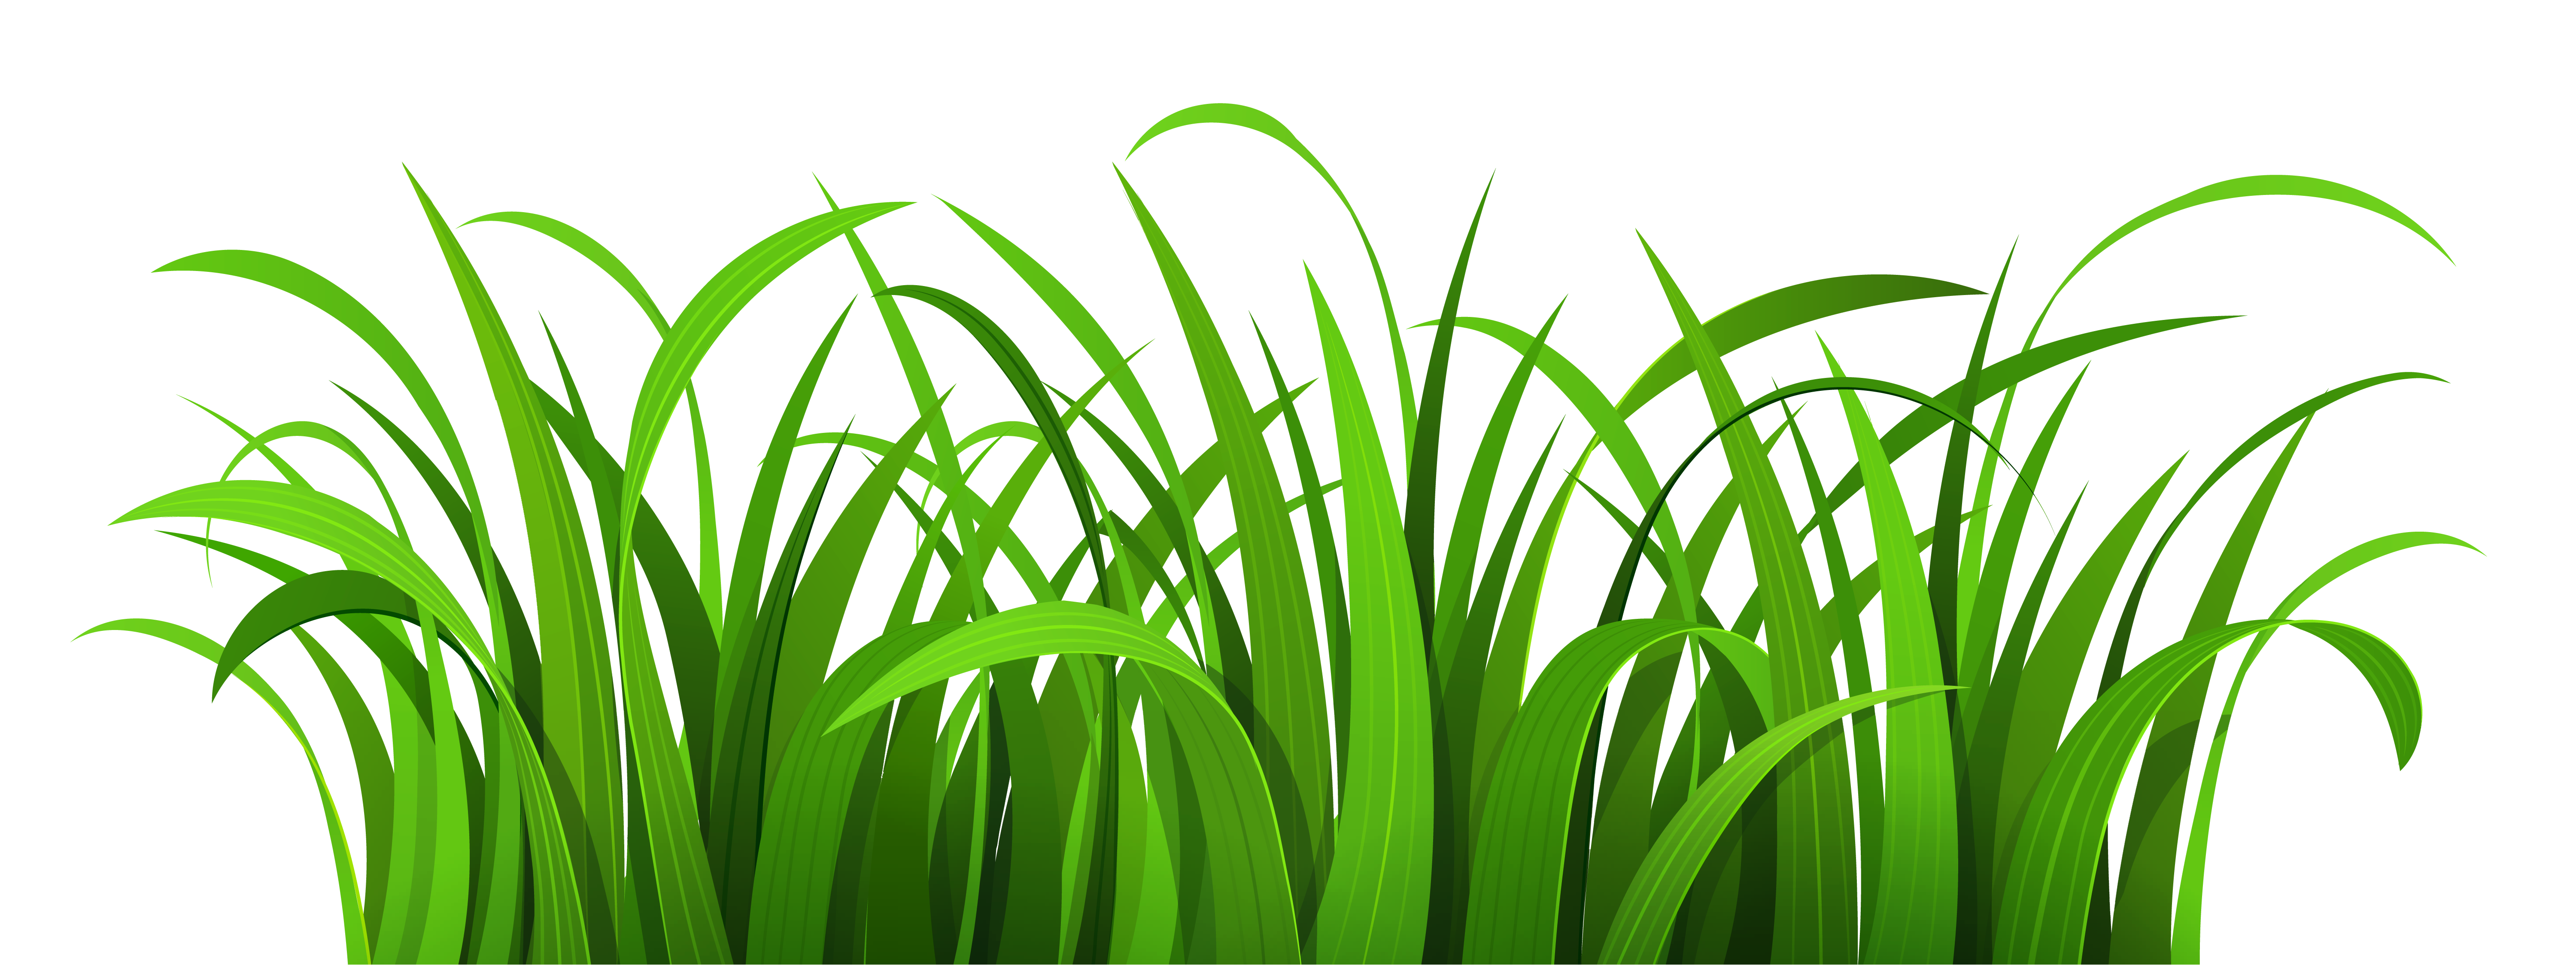 Lawn clipart grass patch. Png bulletin board ideas